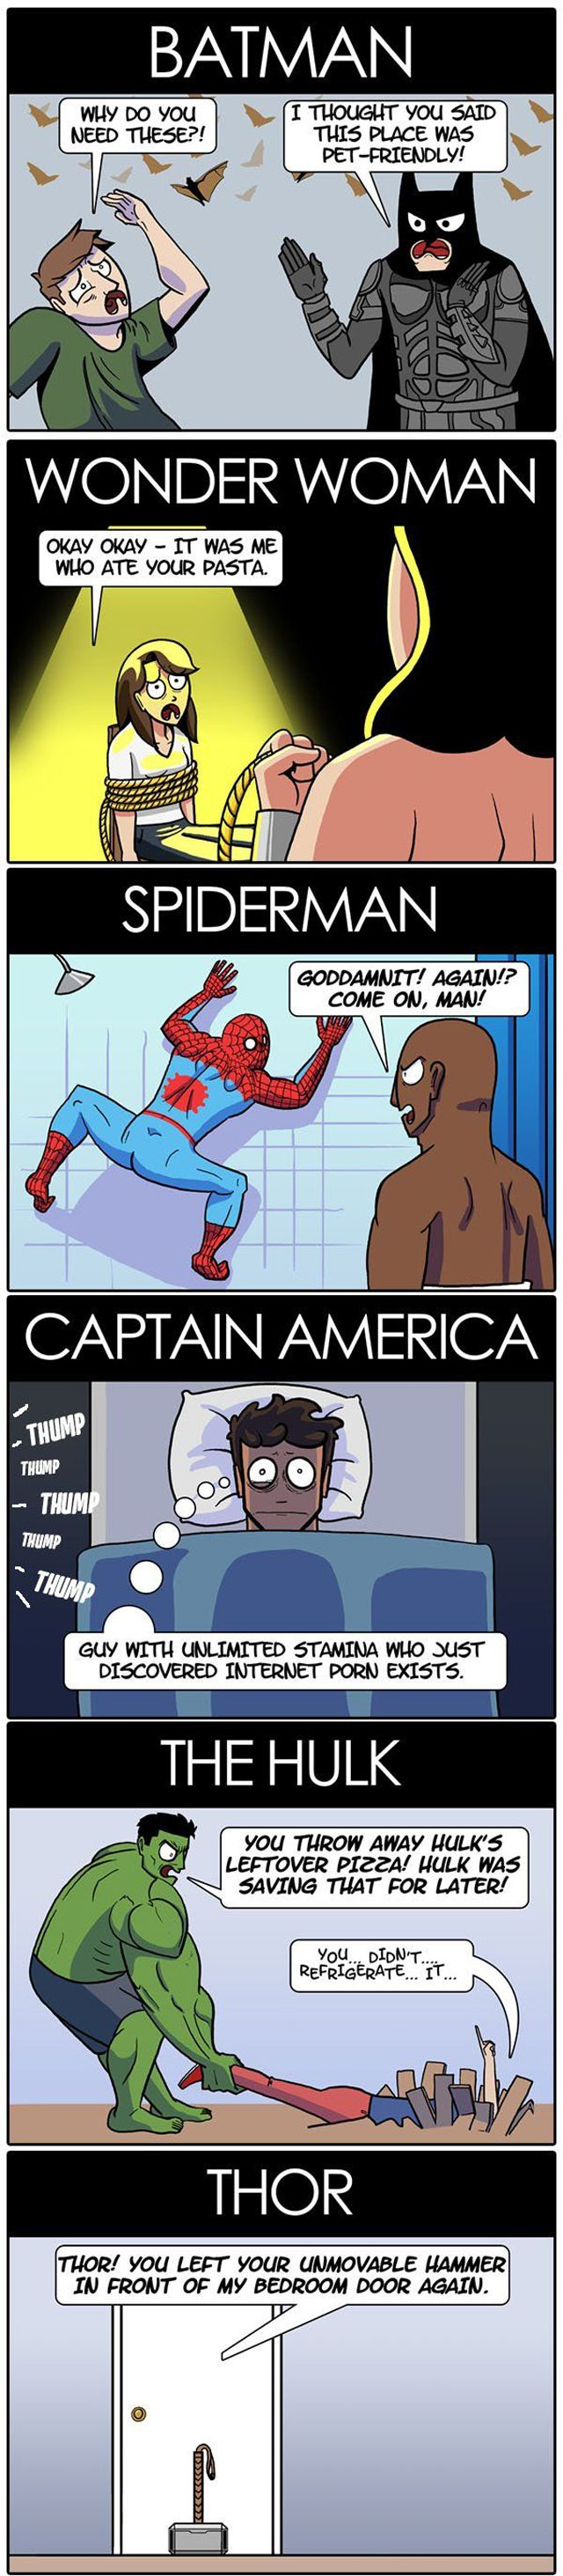 Funny superhero roommates cartoon